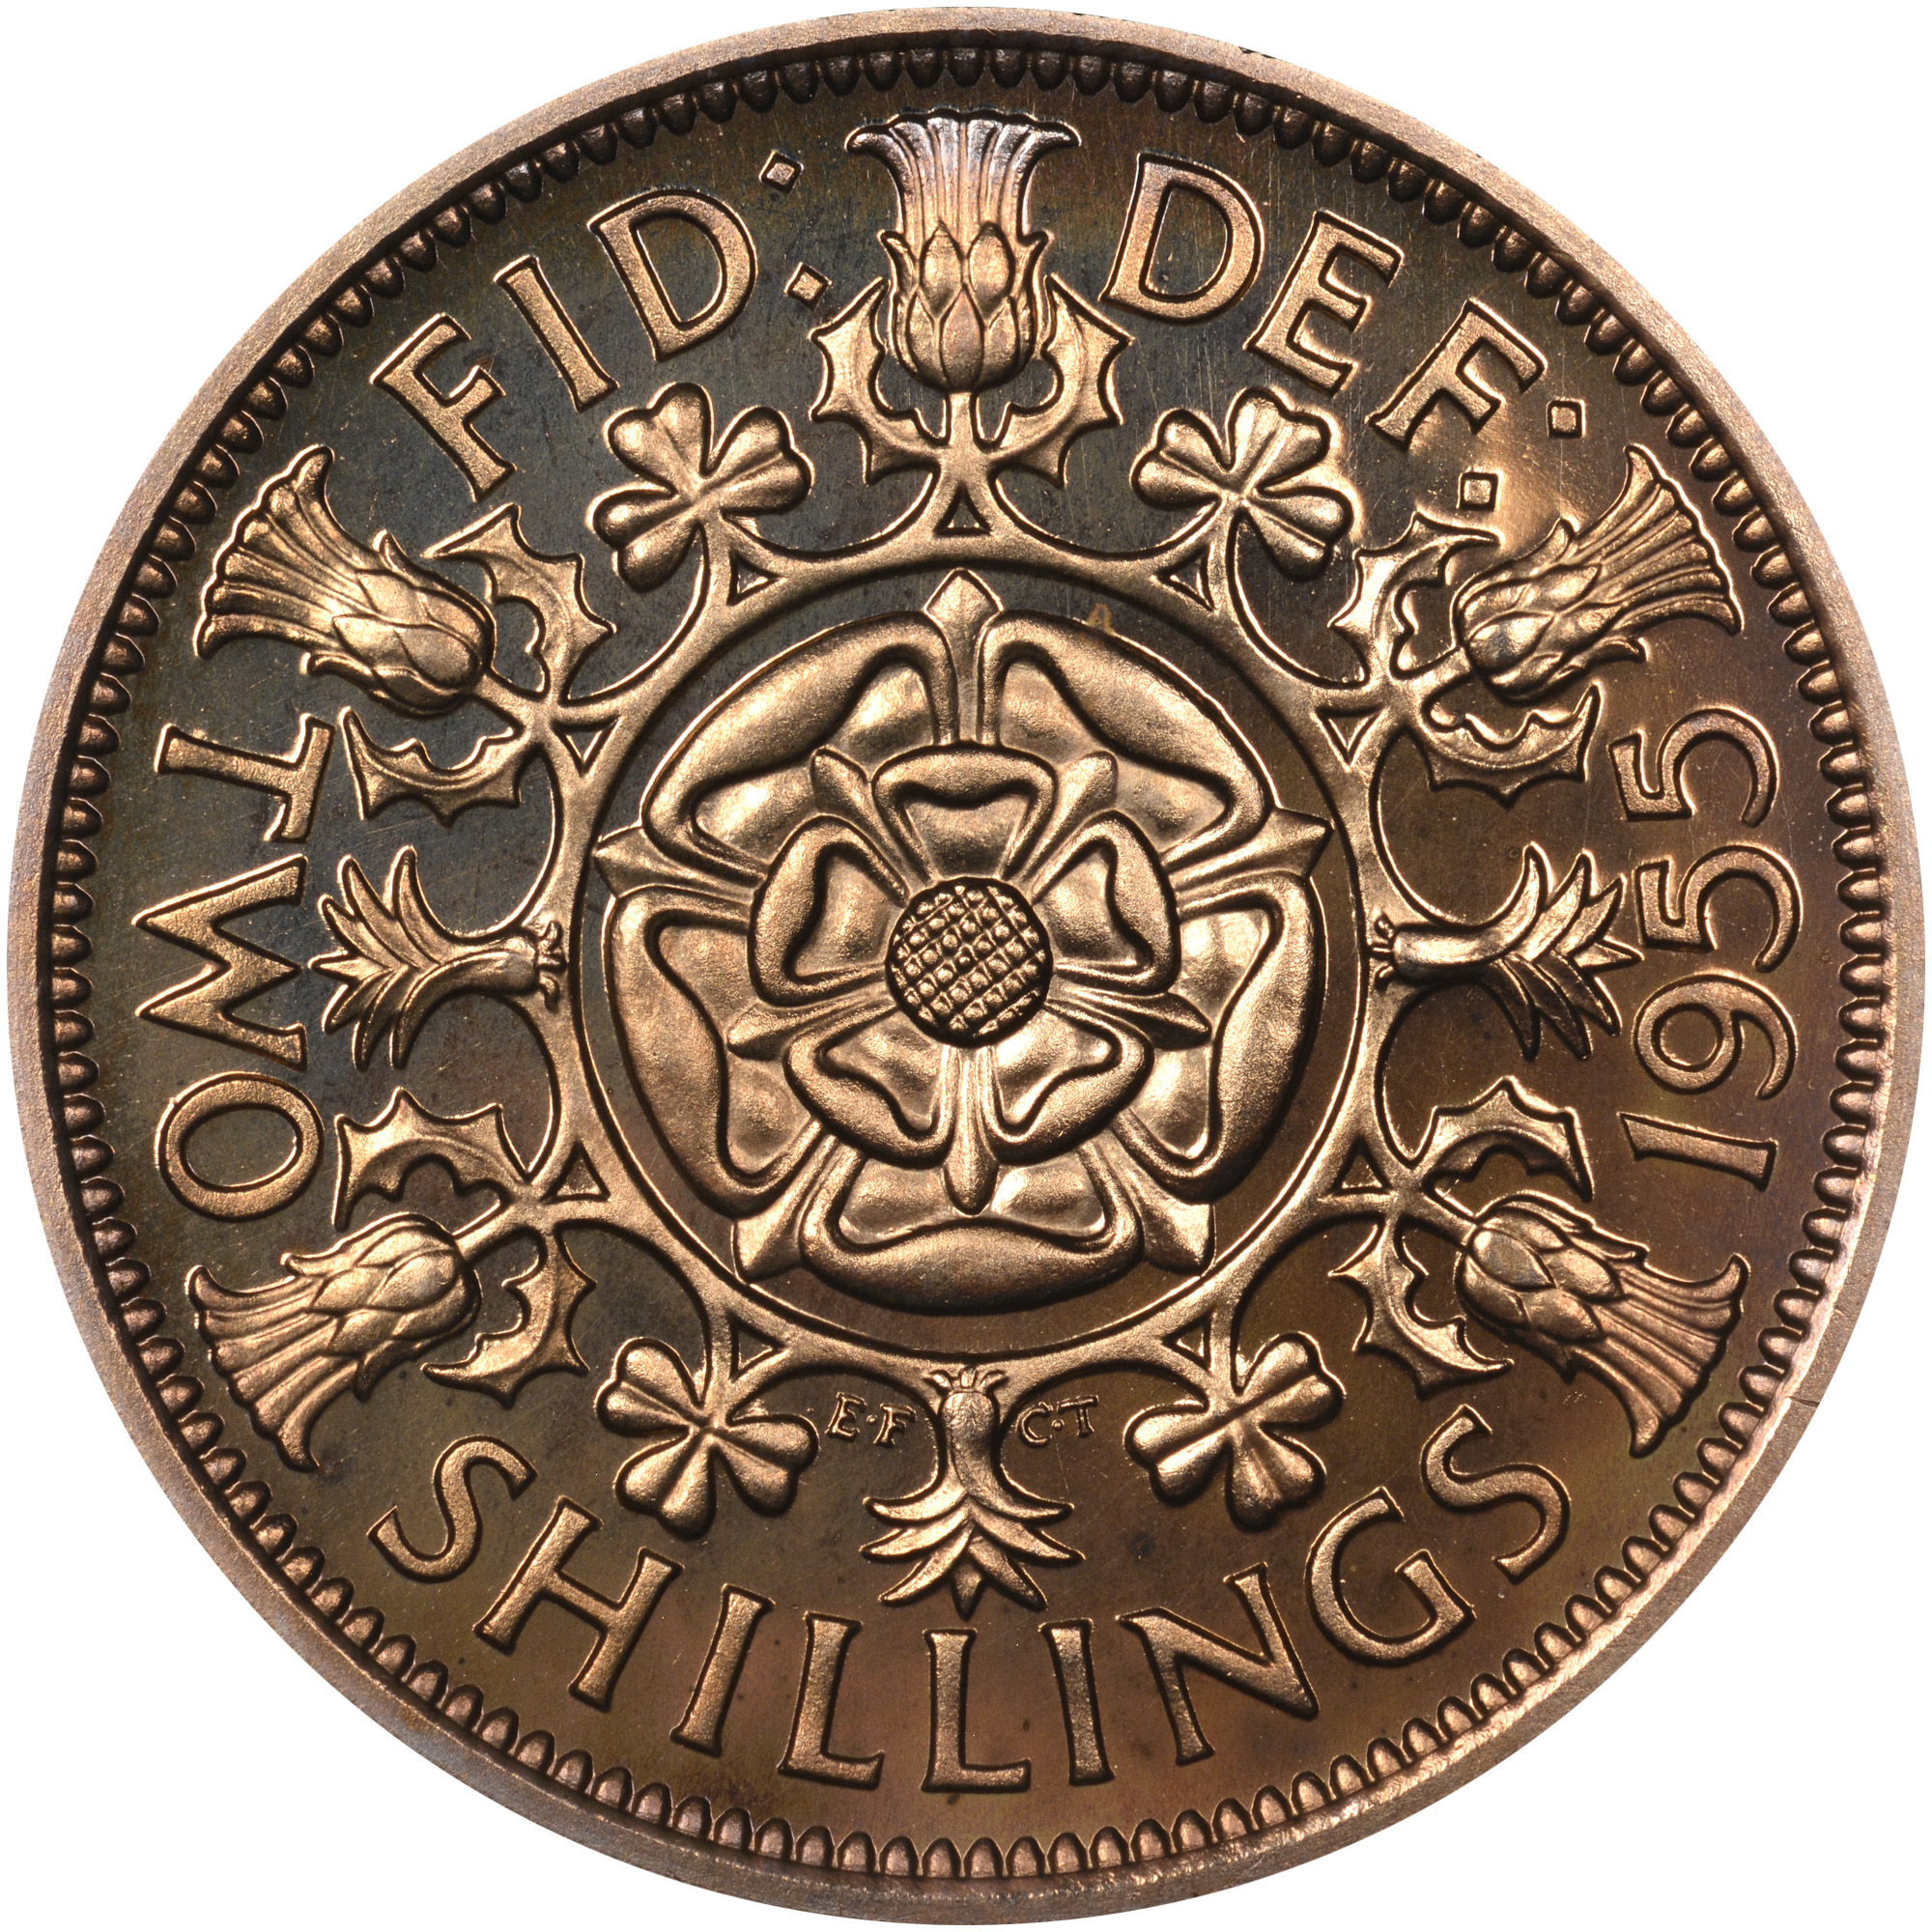 1954 two shilling coin value